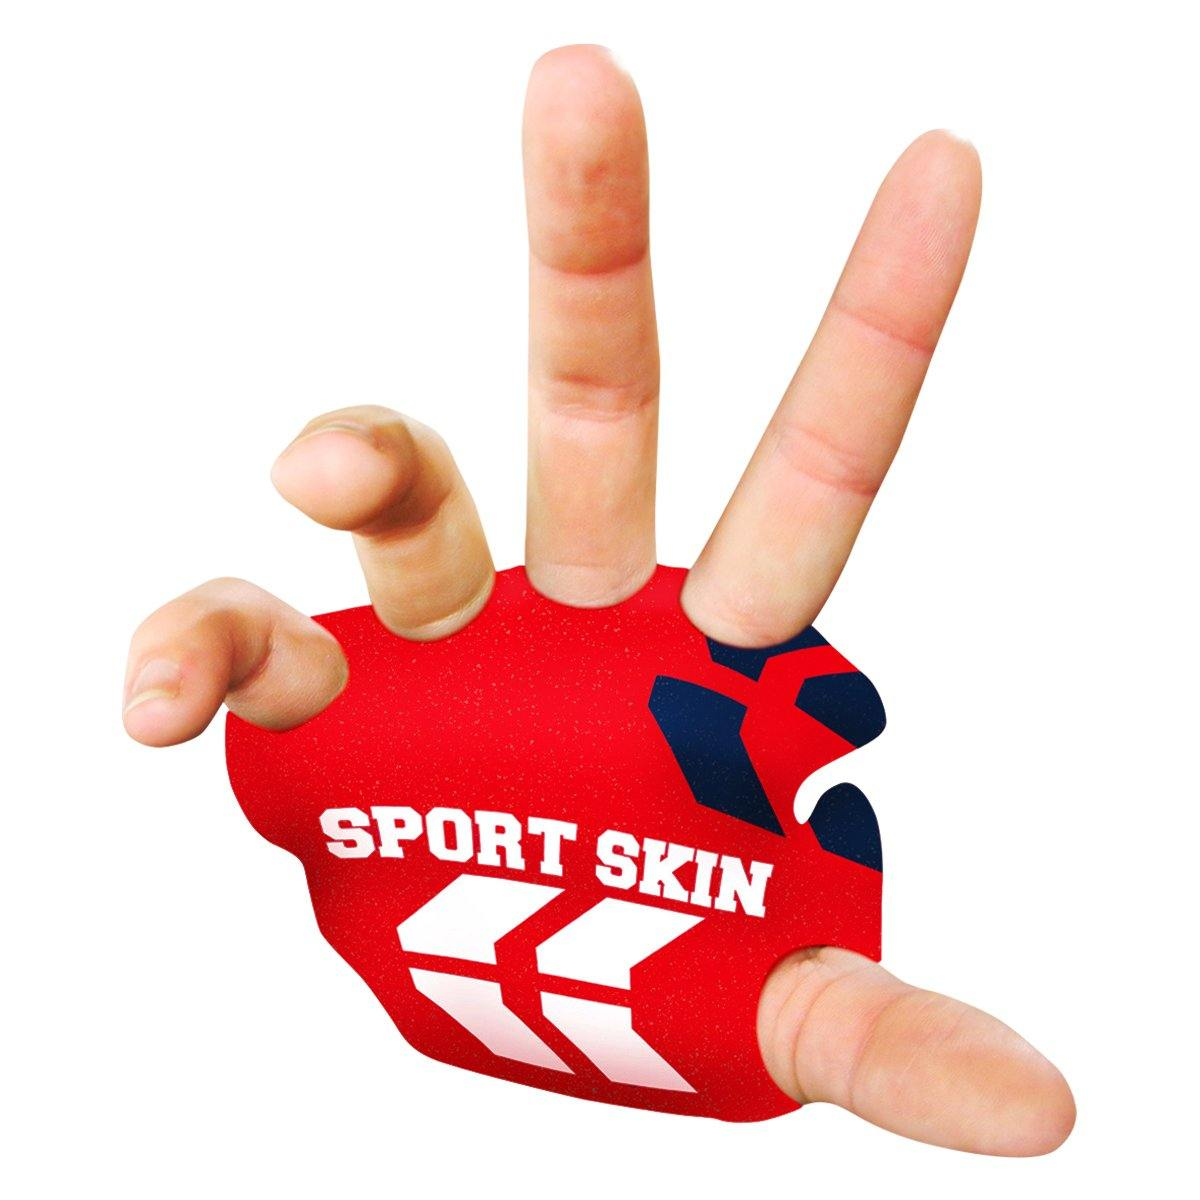 Blister and calluses hand protection for sports | Sport Skin by STKR Concepts